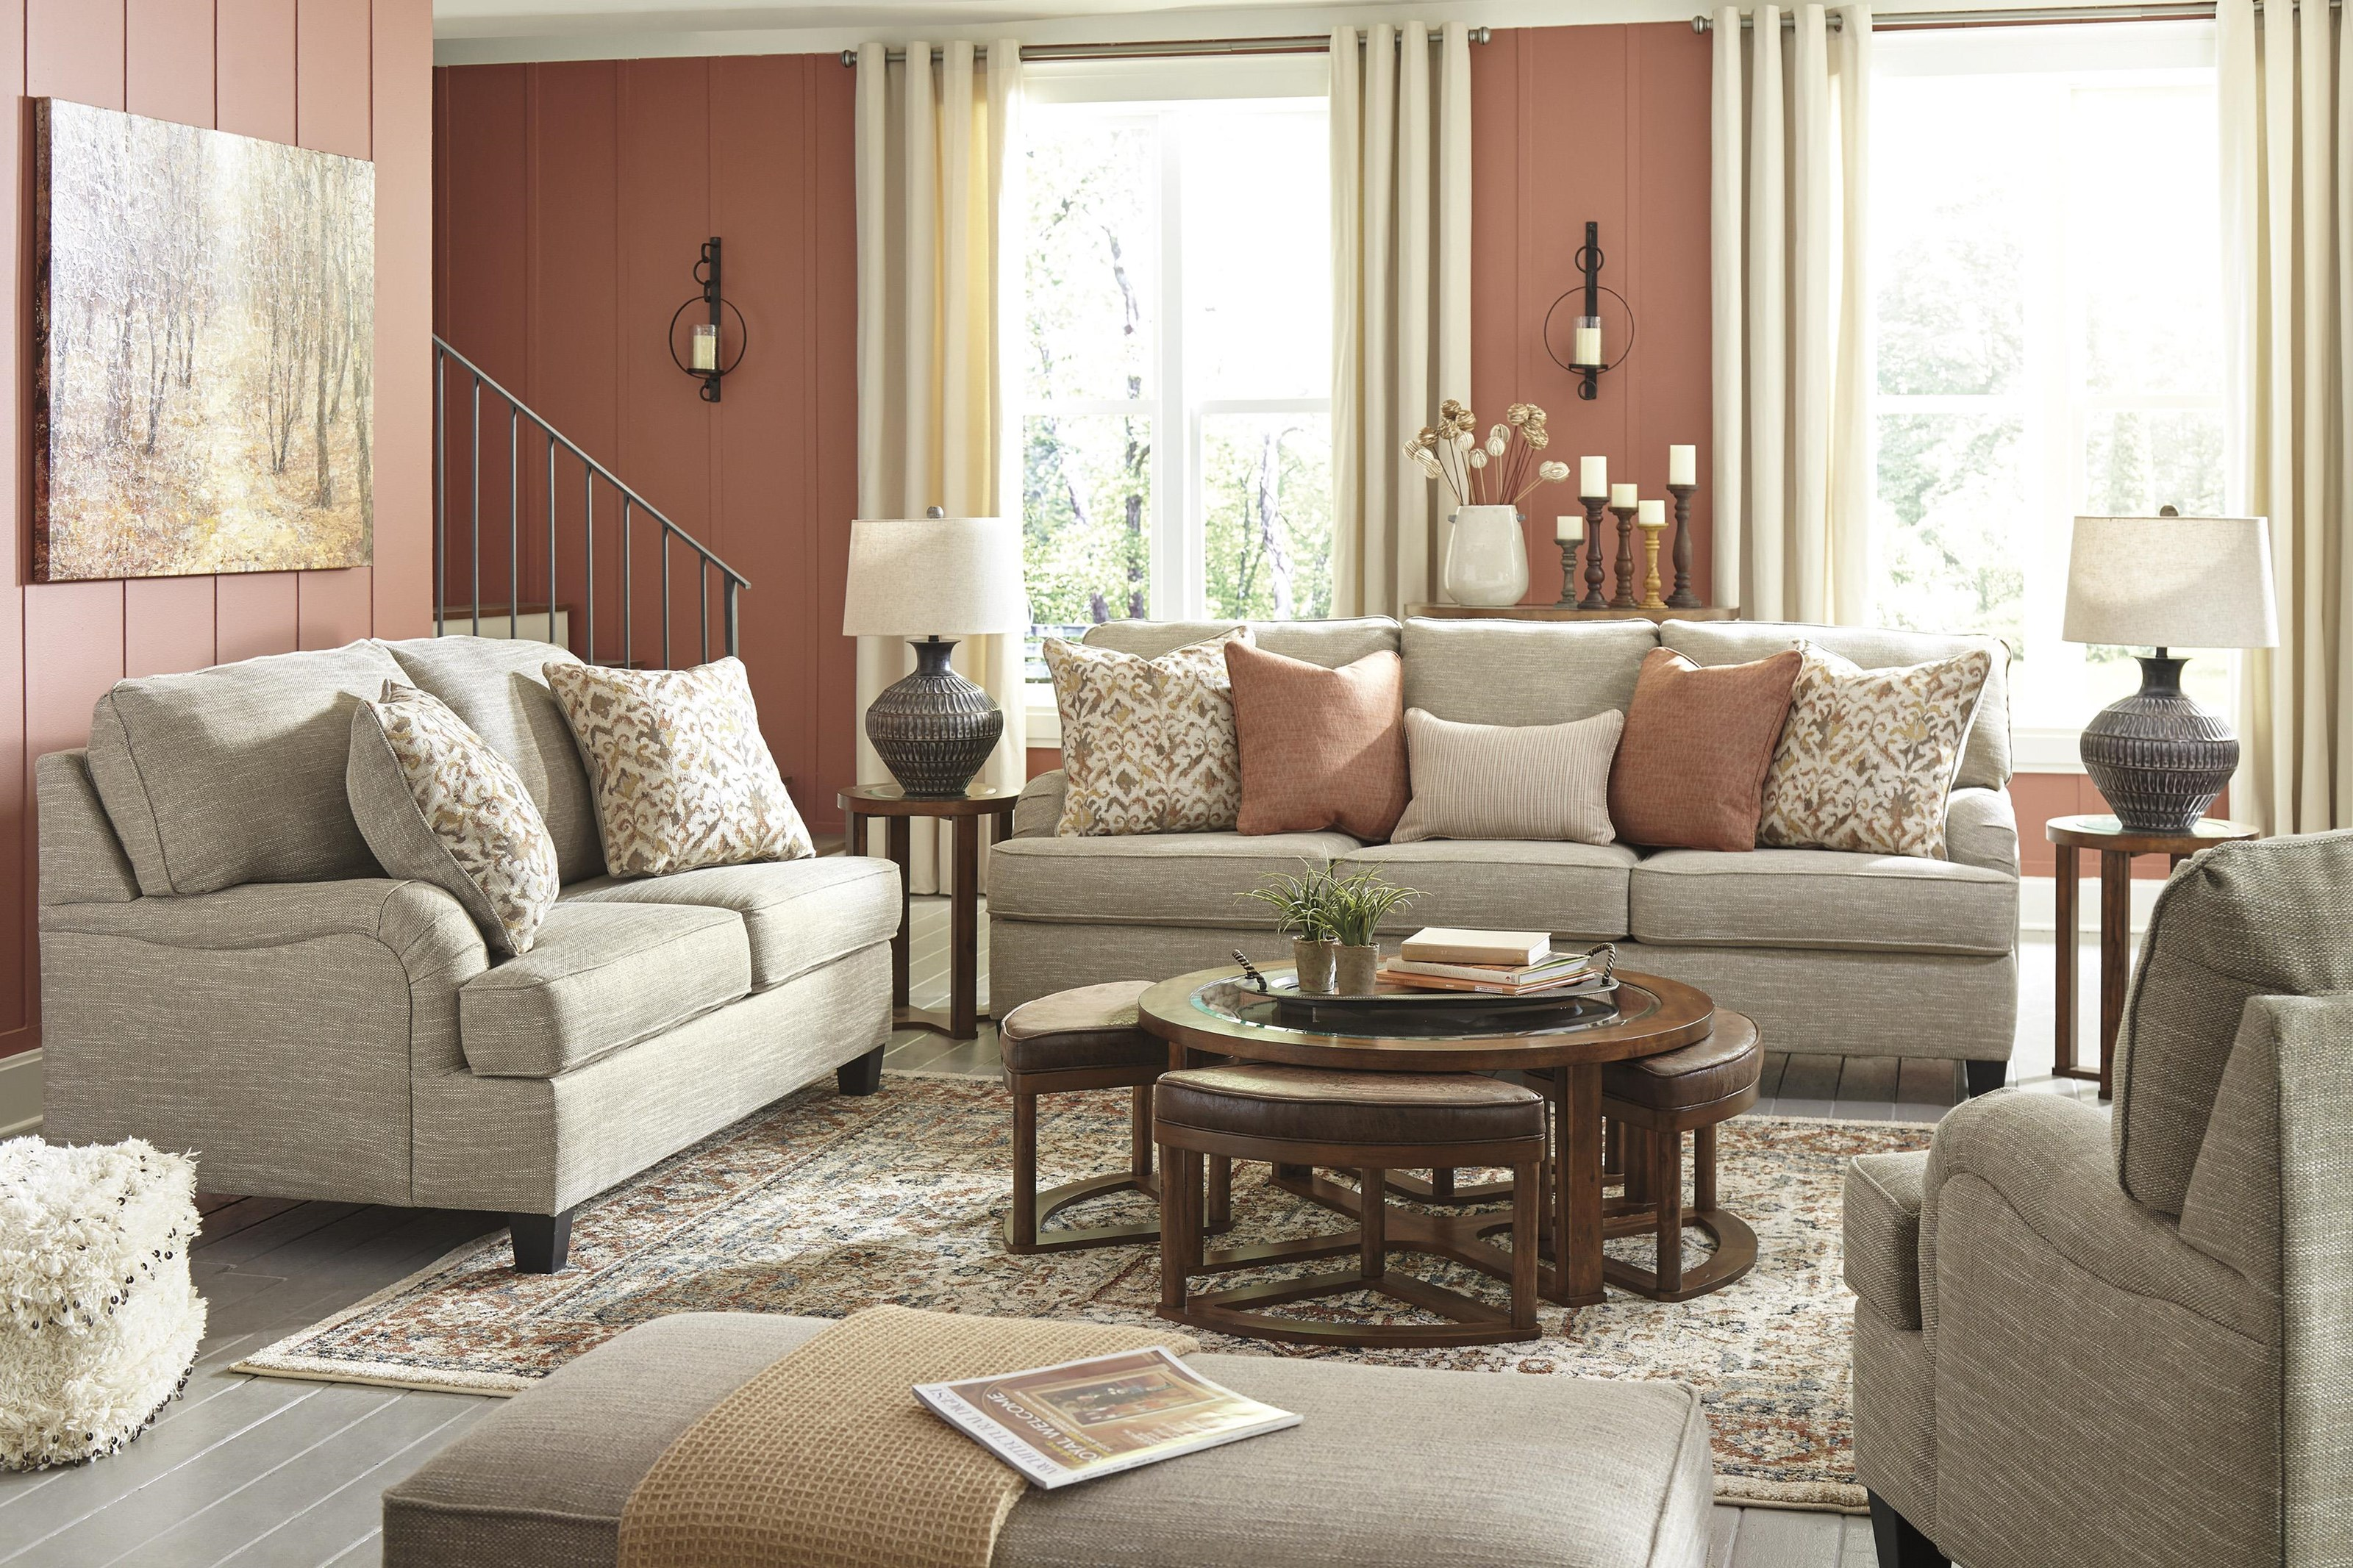 Almanza Sofa, Loveseat and Chair Set by Signature Design by Ashley at Sam Levitz Outlet